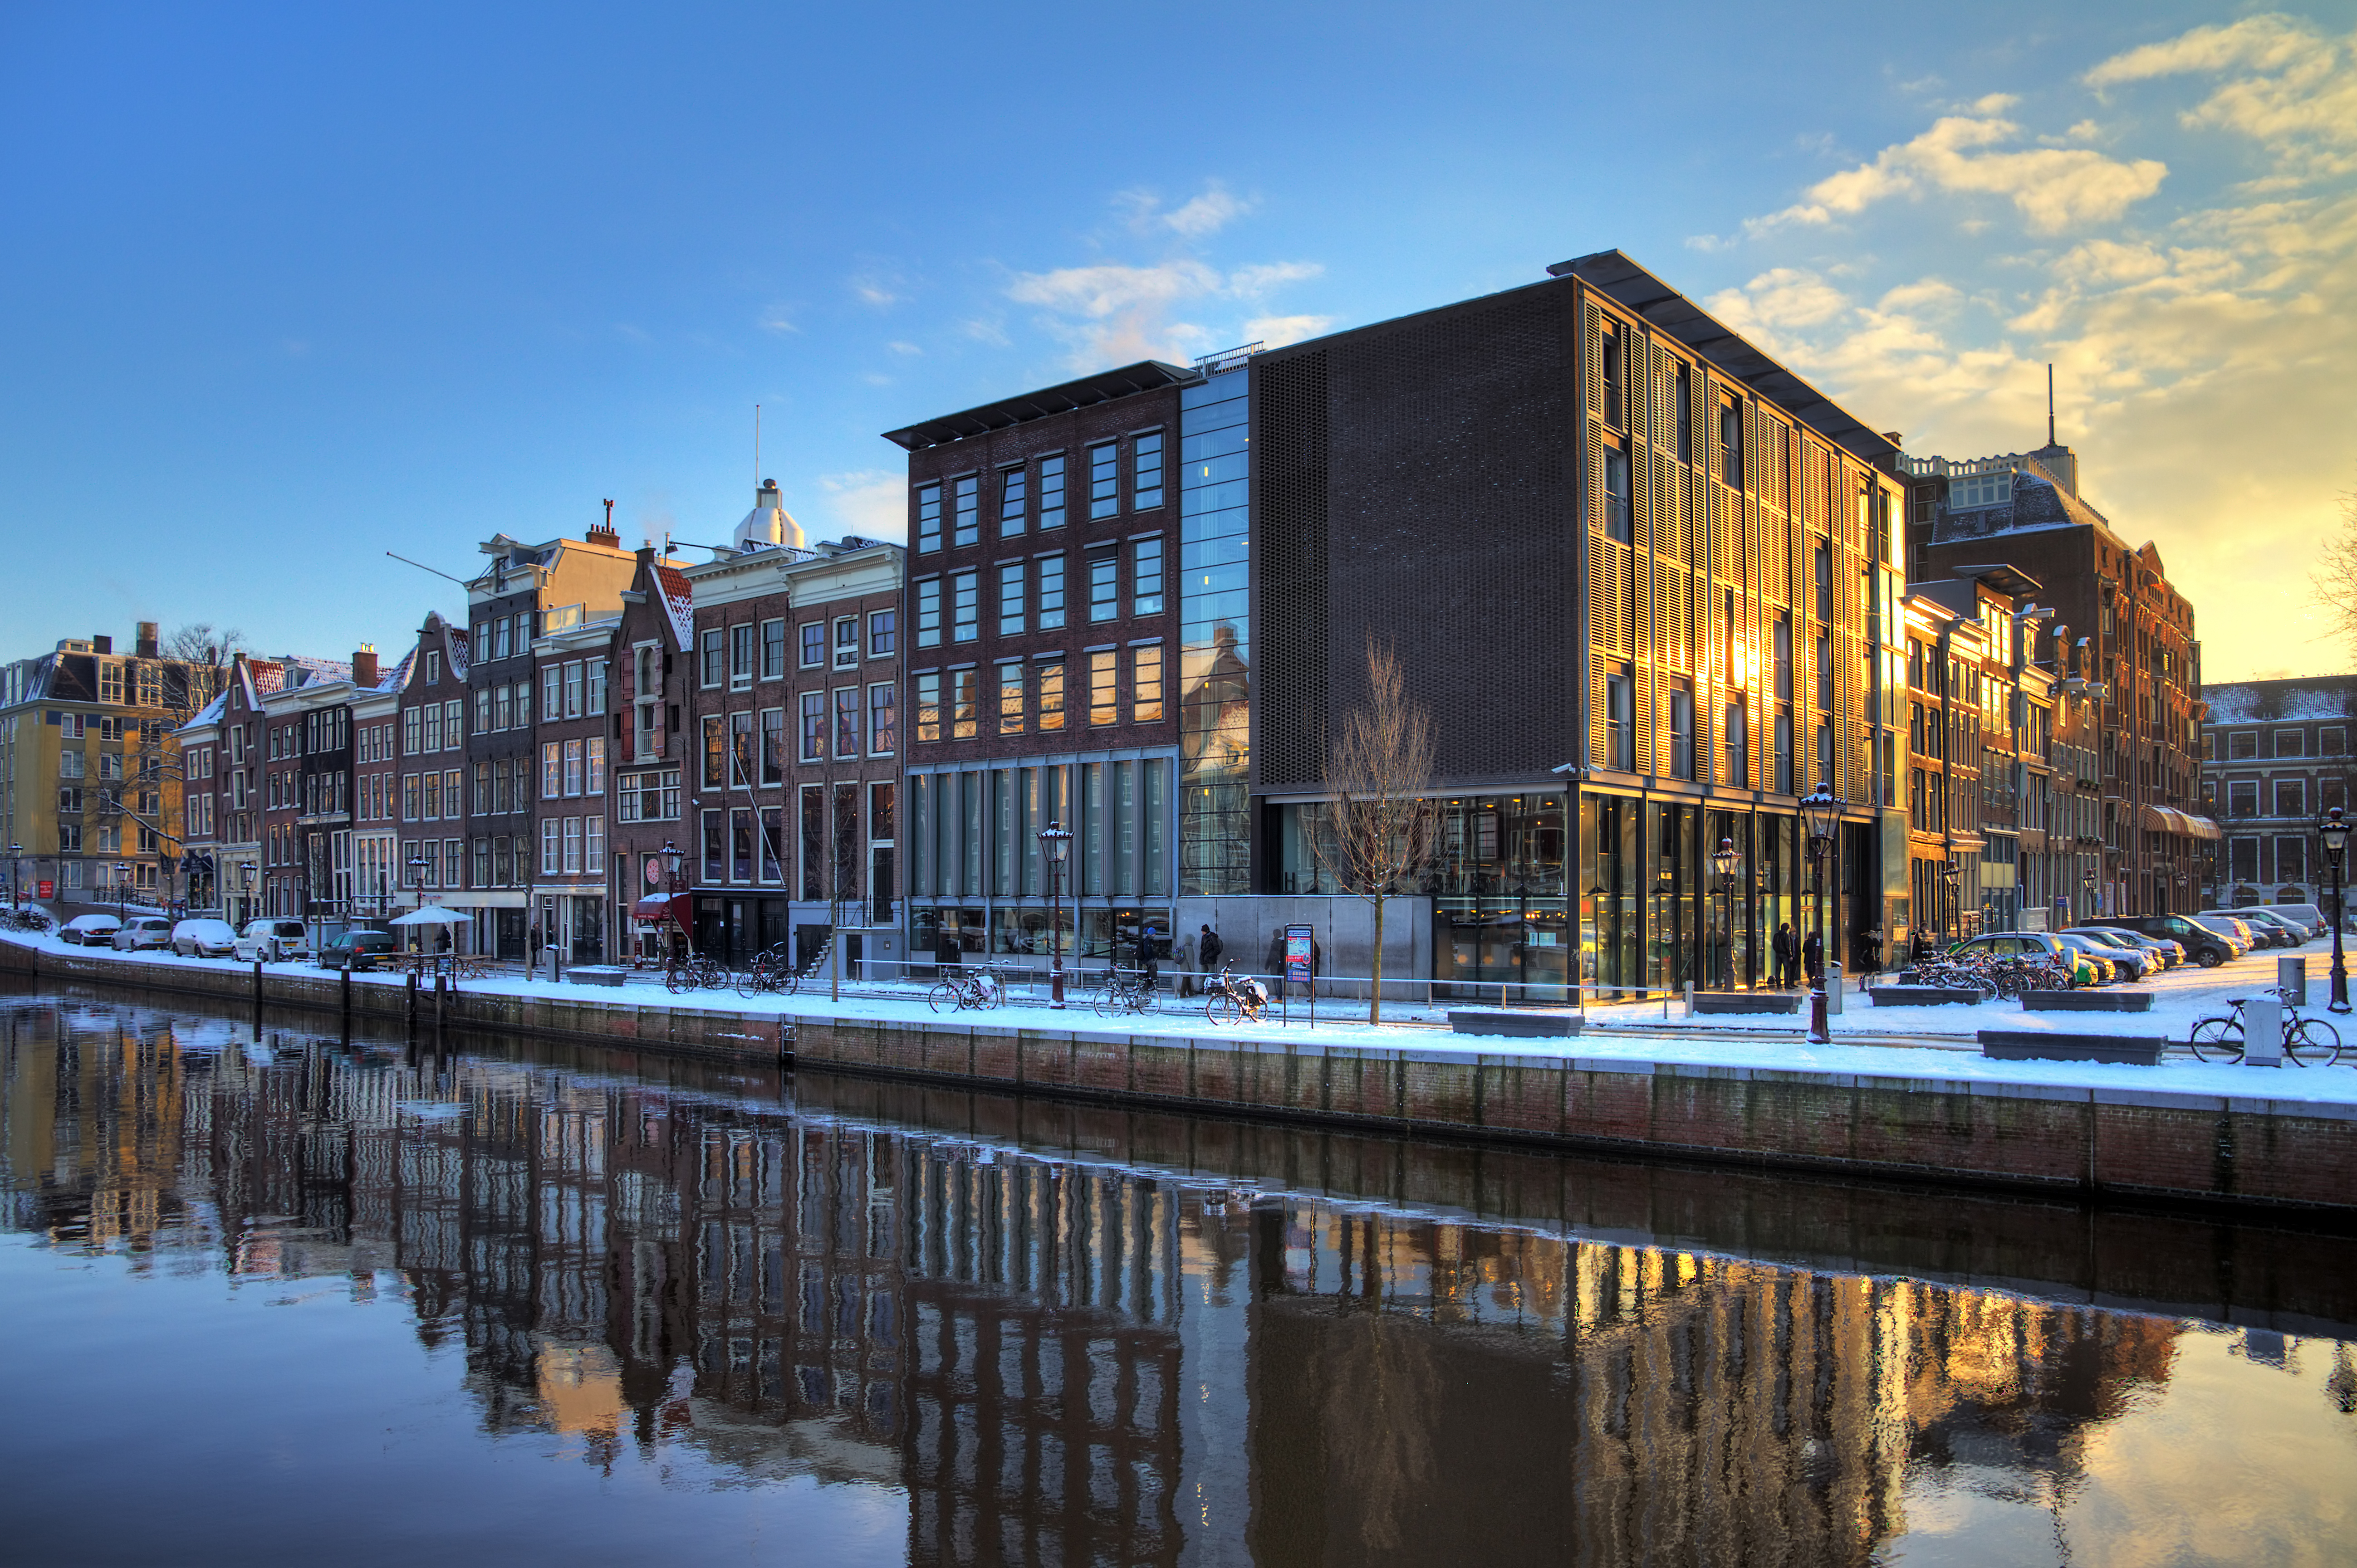 Anne Frank house and holocaust museum in Amsterdam.